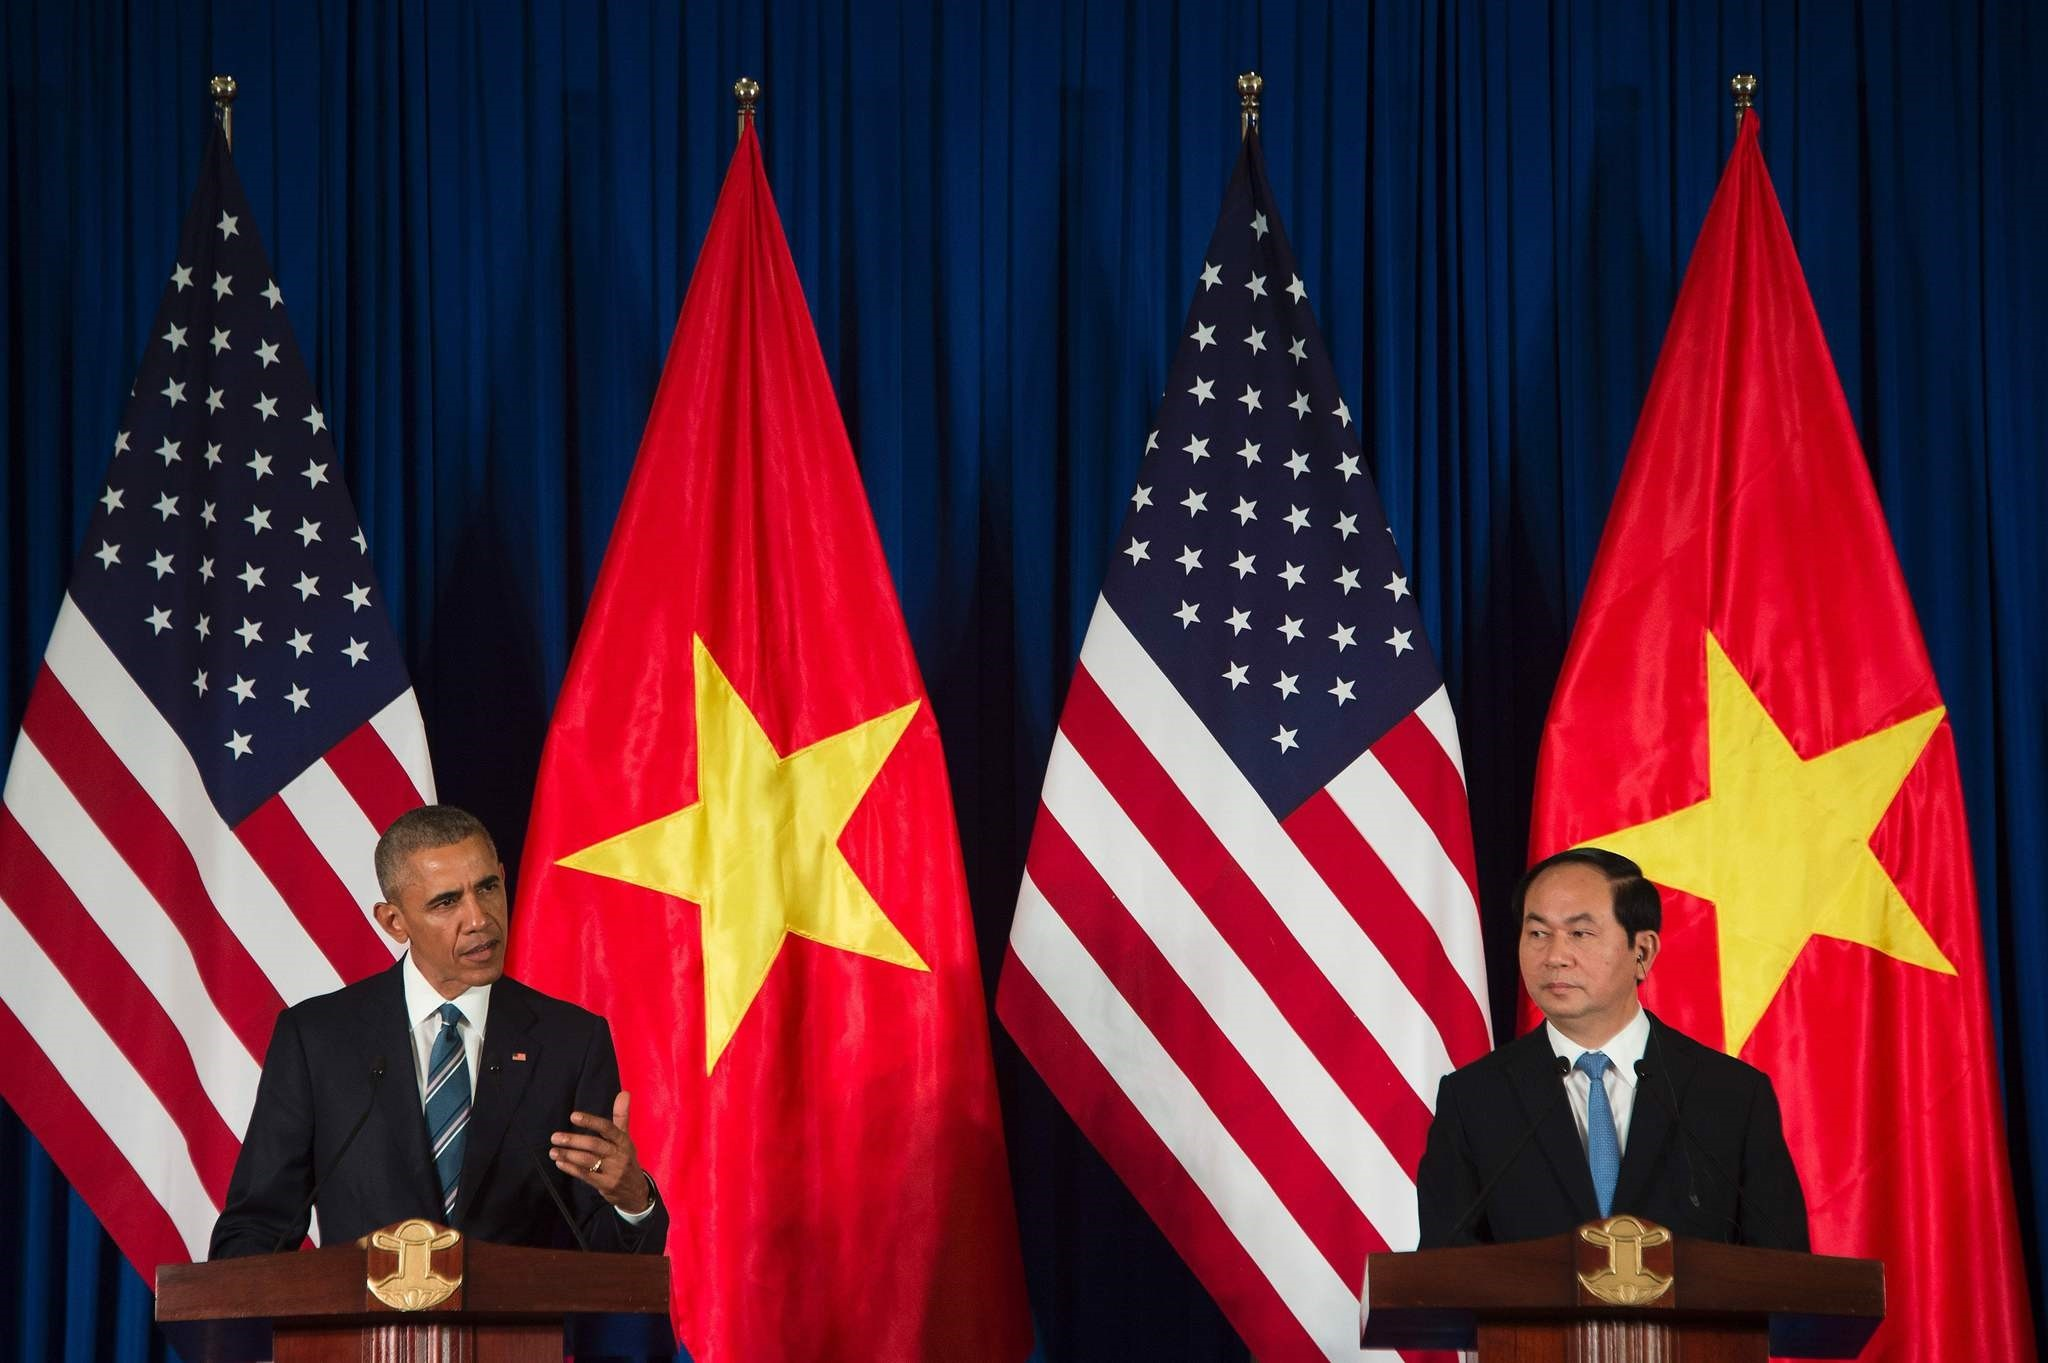 US President Barack Obama and Vietnamese President Tran Dai Quang speak during a joint press conference in Hanoi on May 23, 2016. (AFP Photo)